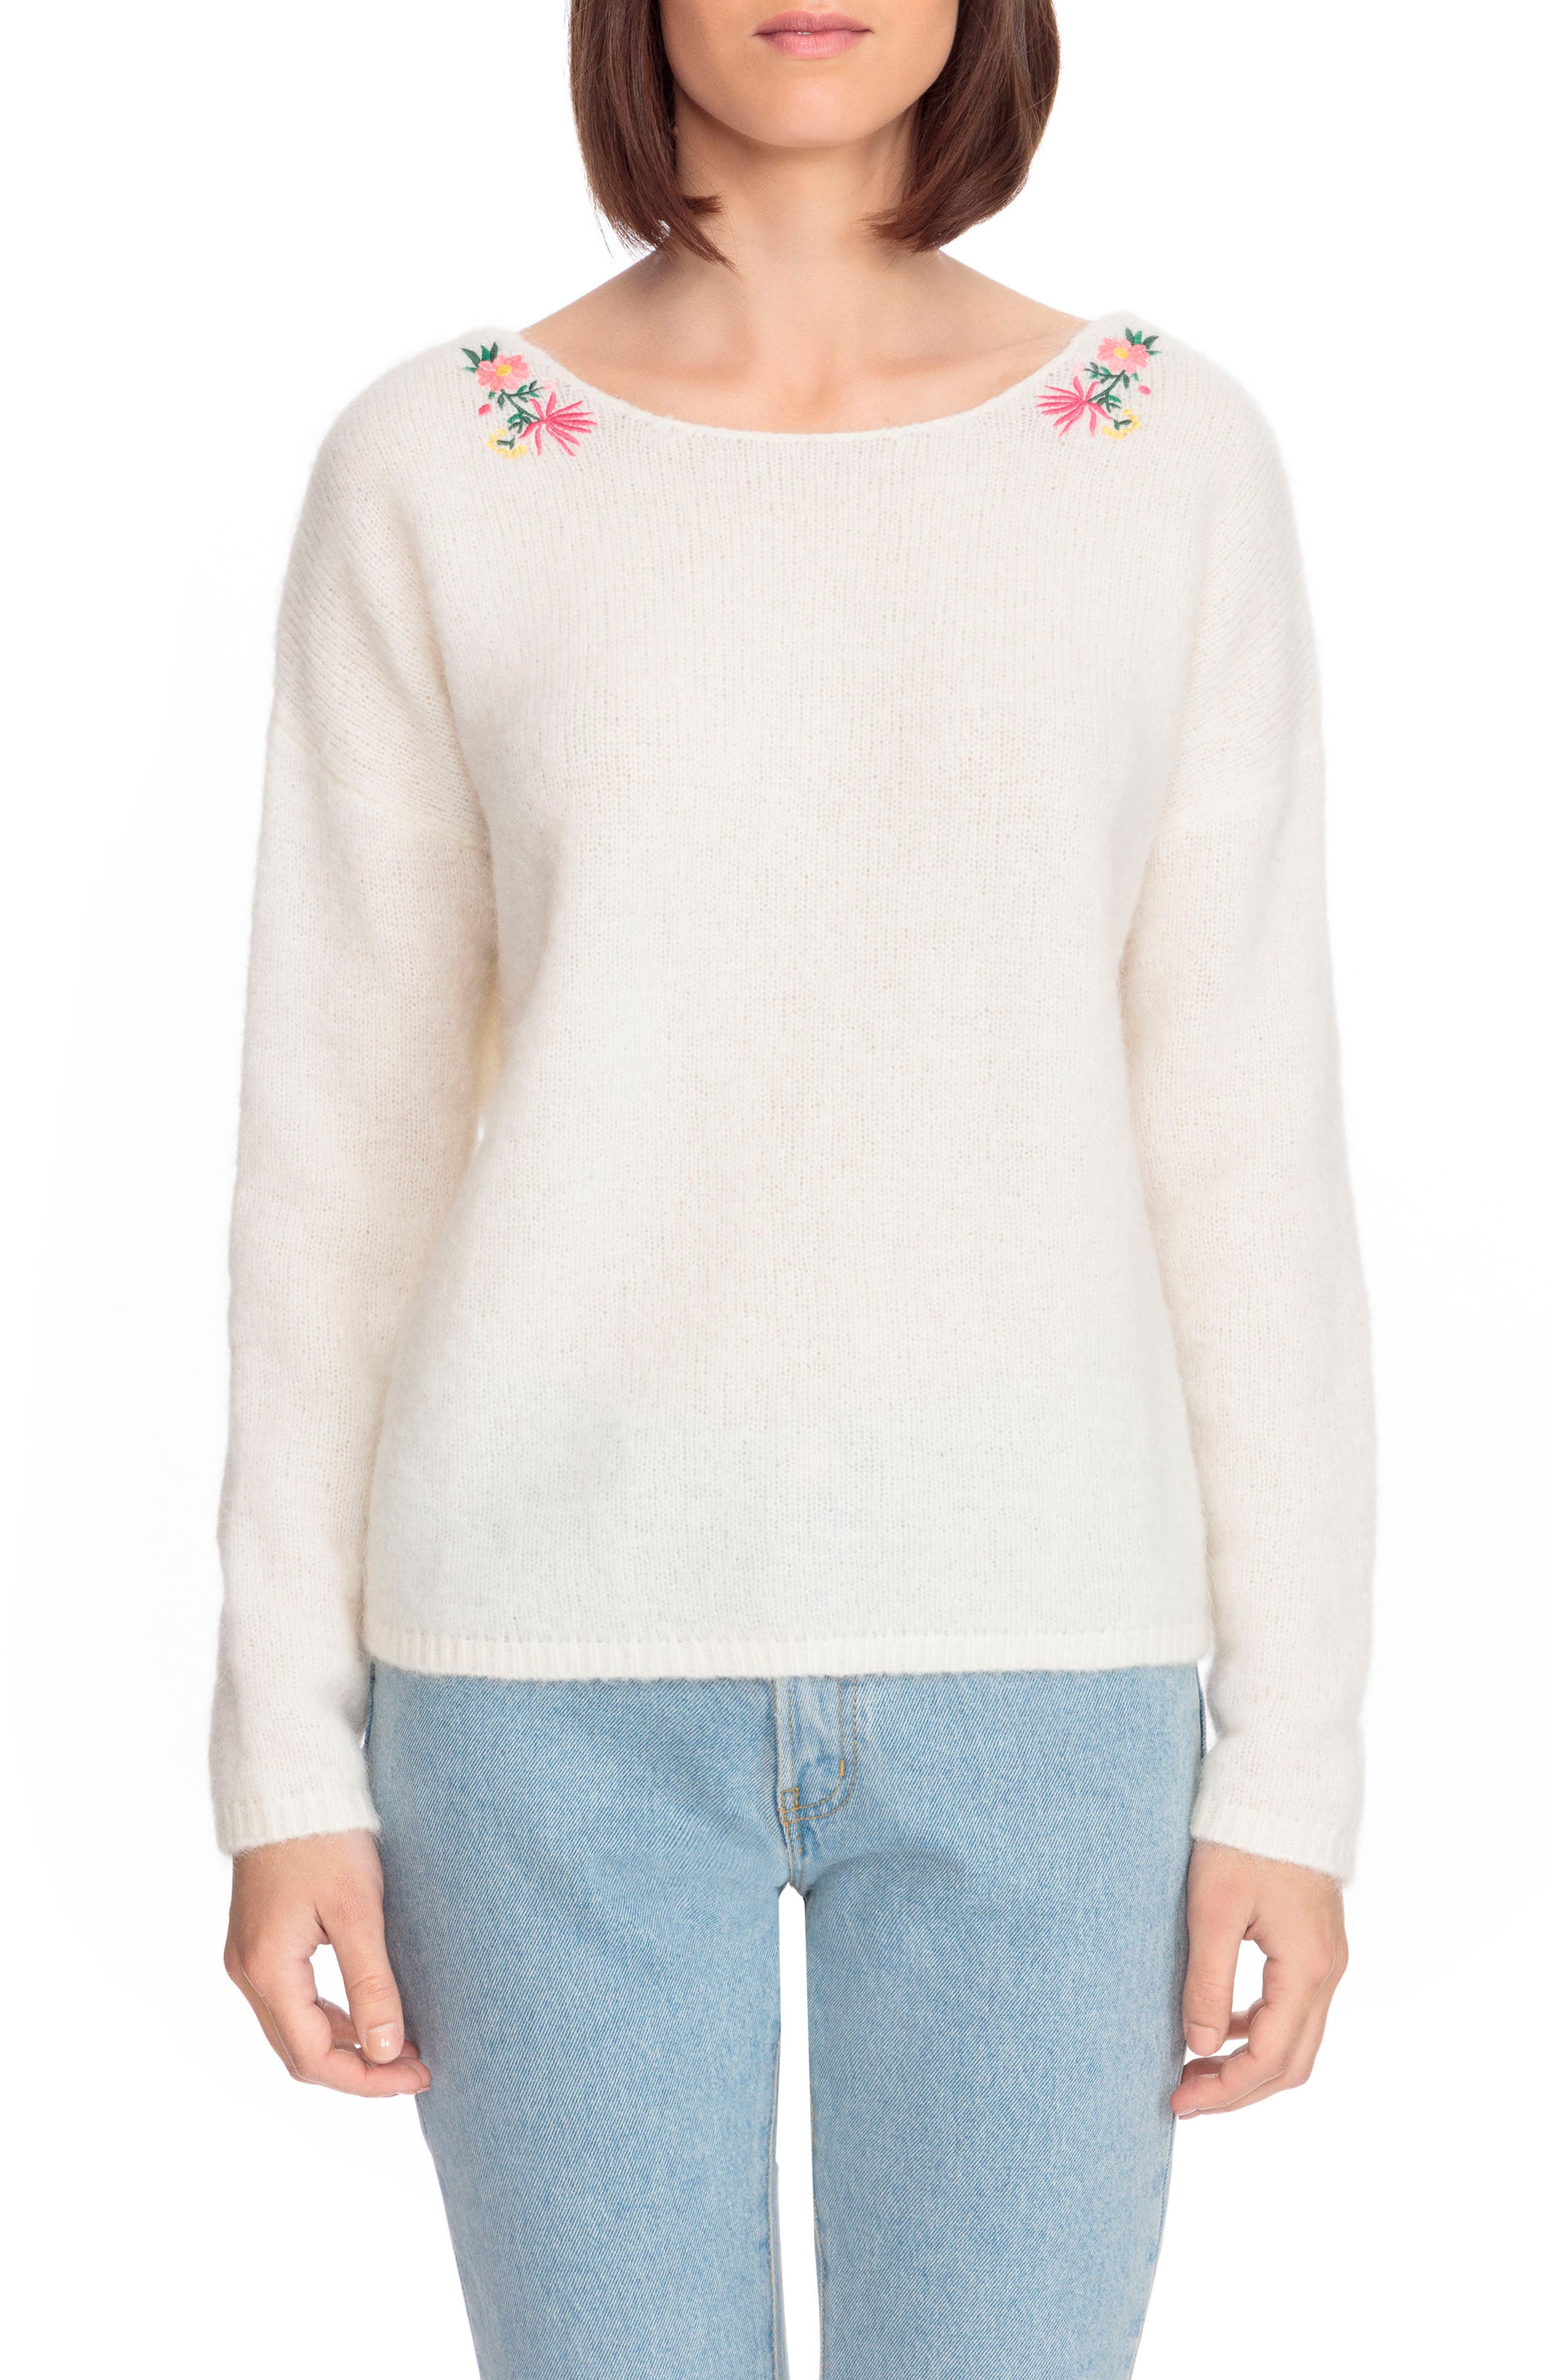 Cassiopee Embroidered Sweater,                         Main,                         color, Off White